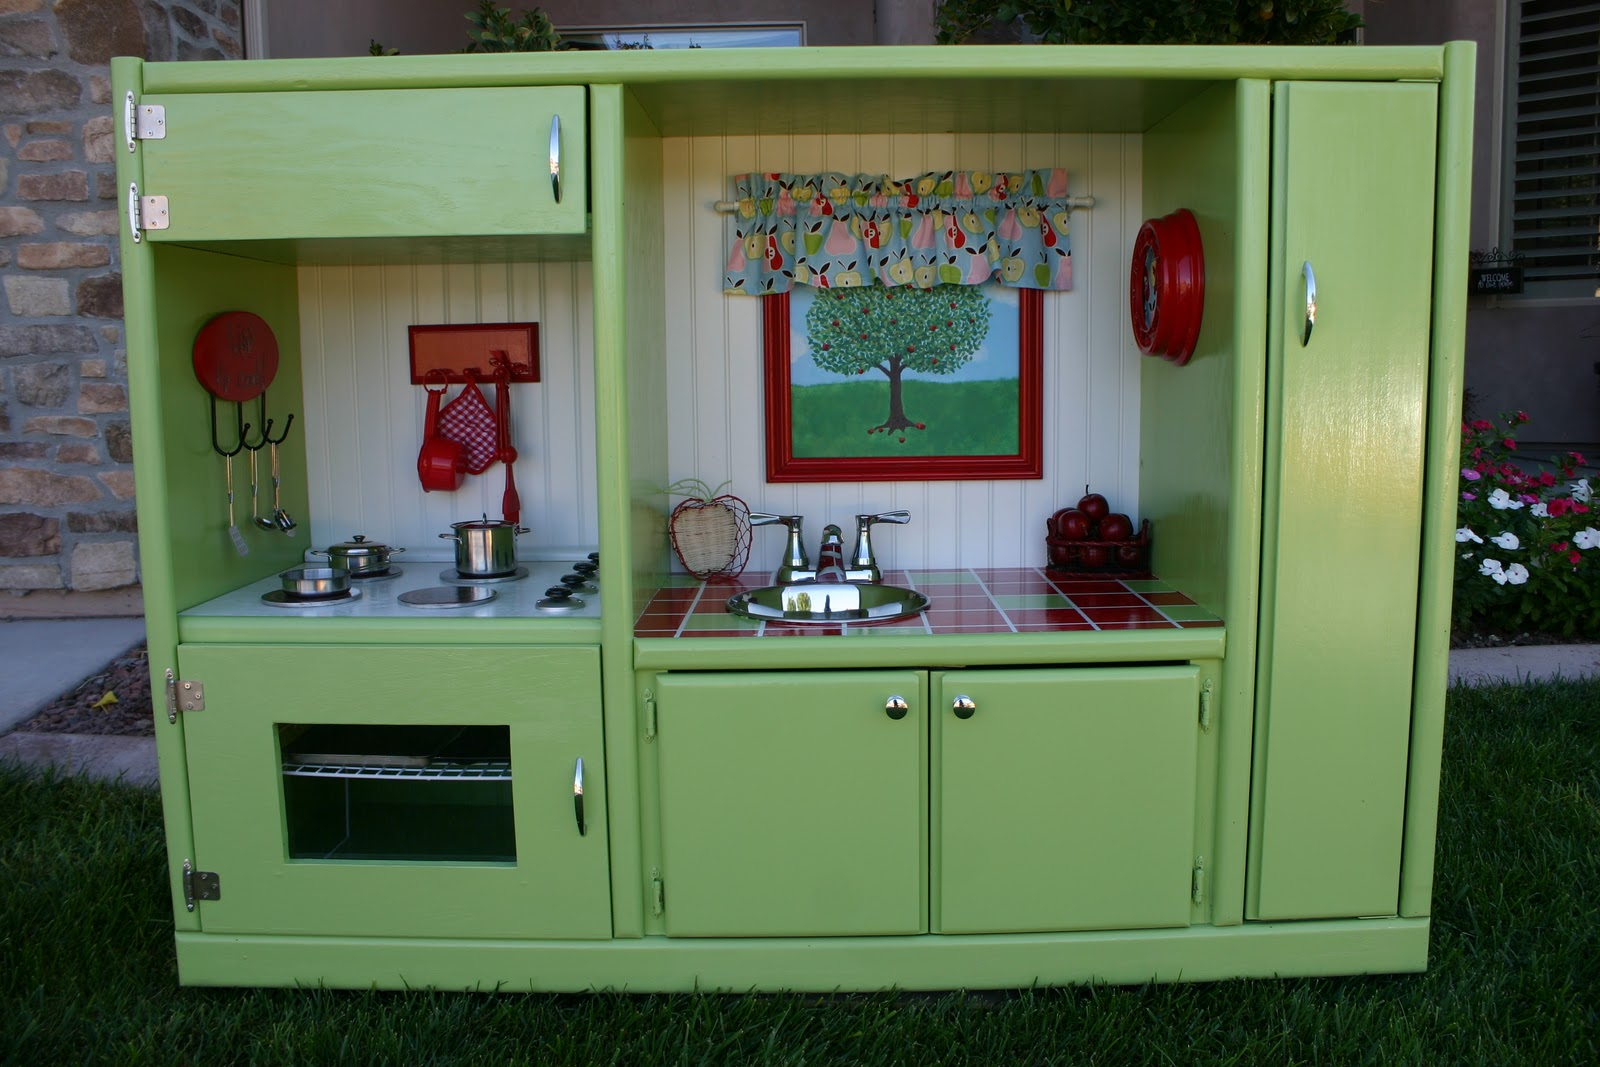 Doubletake Decor: Play Kitchen that will last!